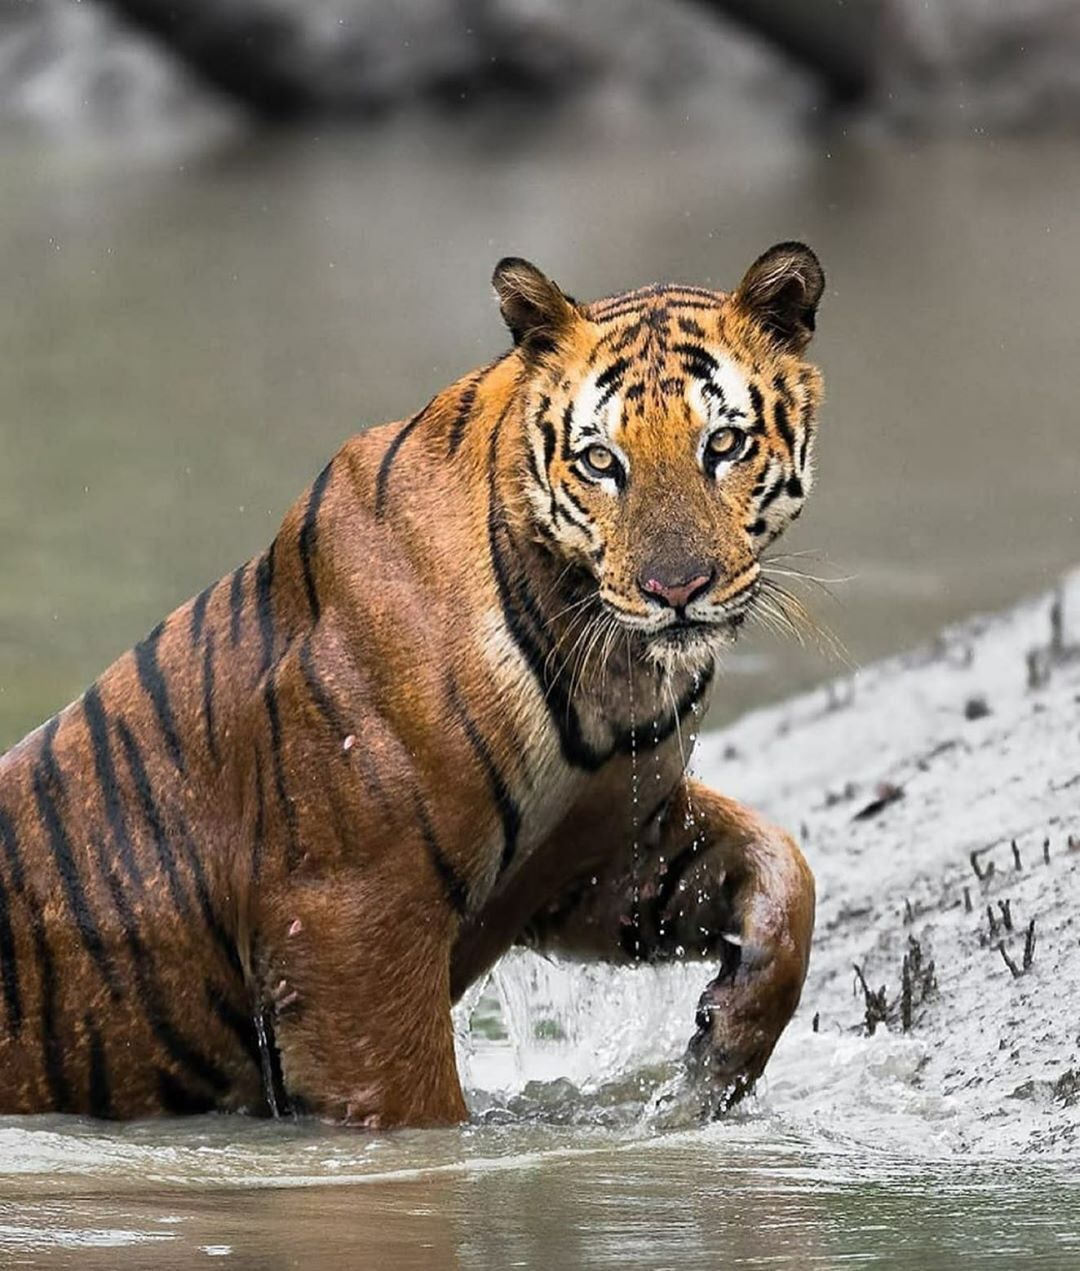 Earths Big Cats On Instagram Beautiful Tiger Going For A Swim How Would You Caption This Photo Follow Us For More Earthsbigcats Follow Us For Mor